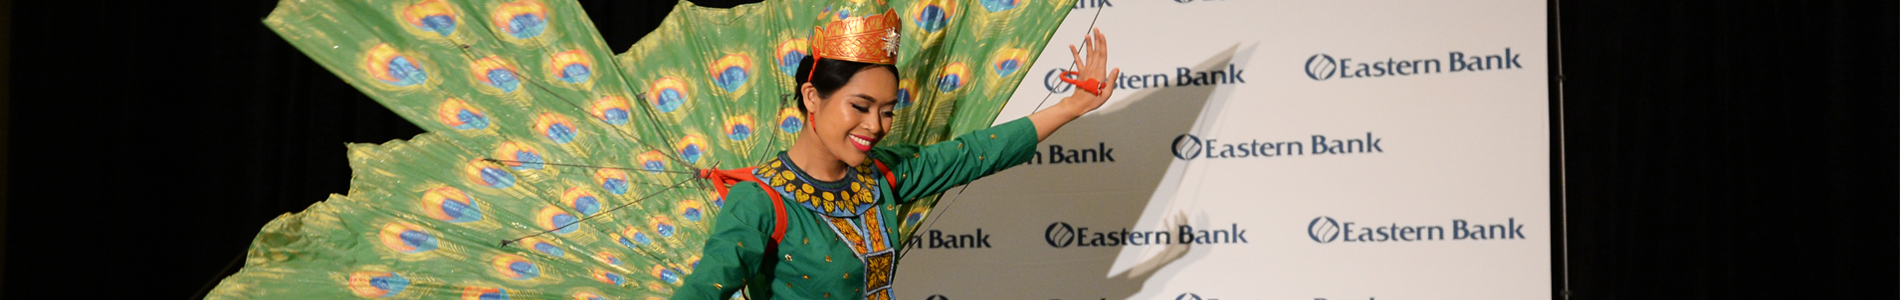 Foundation Celebration for Good: Woman preforming a traditional dance